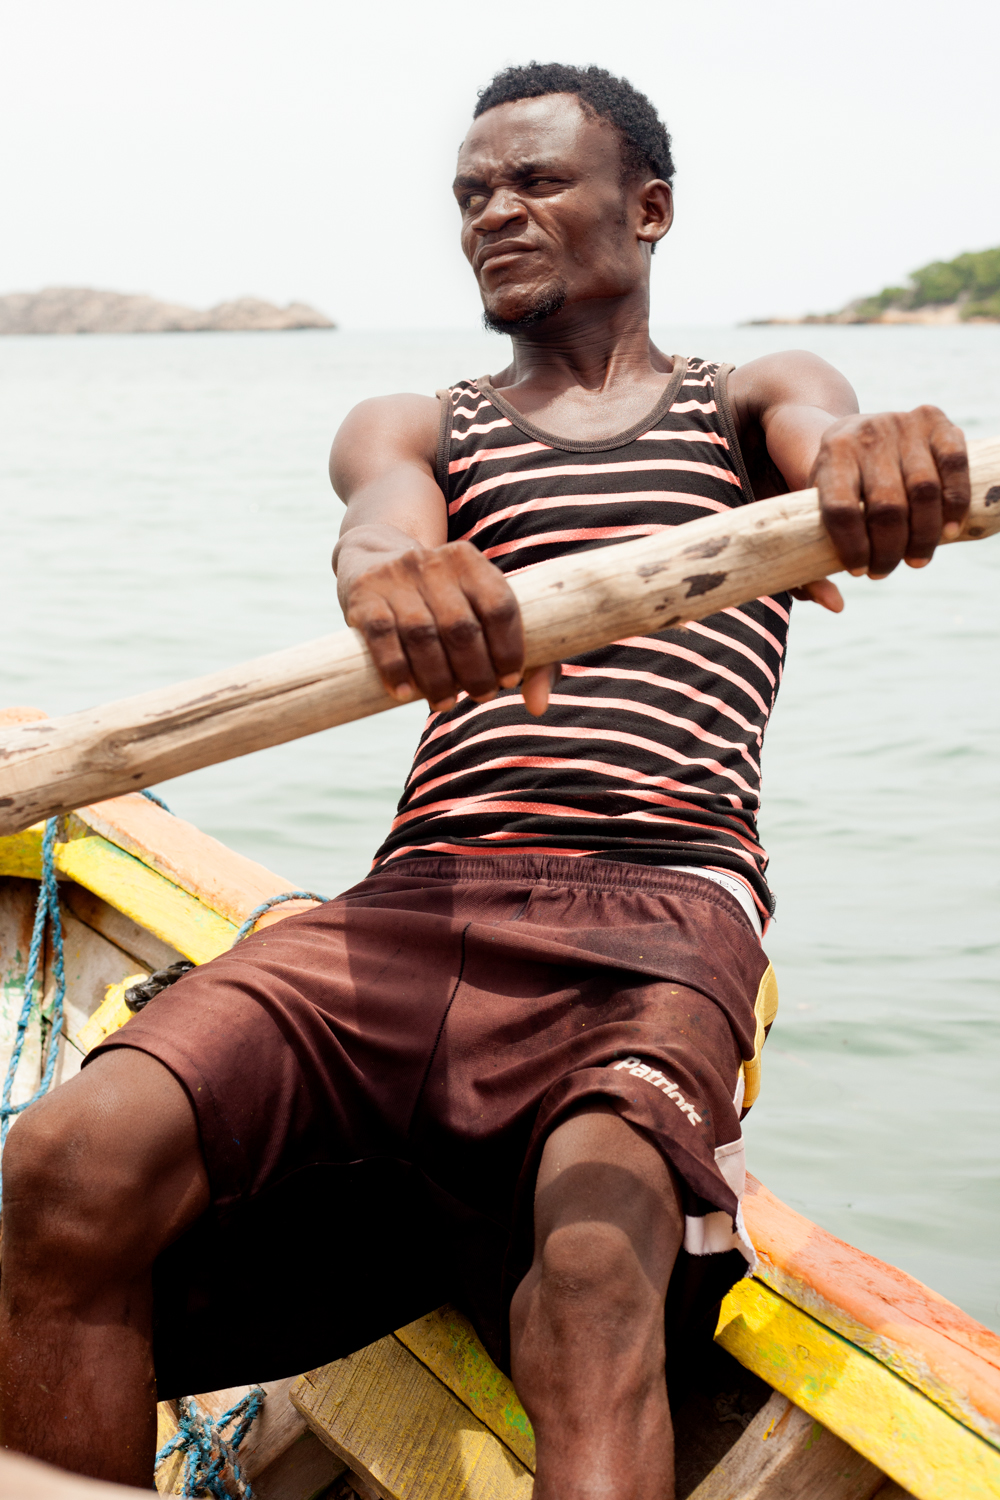 With high unemployment and food scarcity, lots of men have become part-time fishermen, which had led to drastic overfishing of the seas.